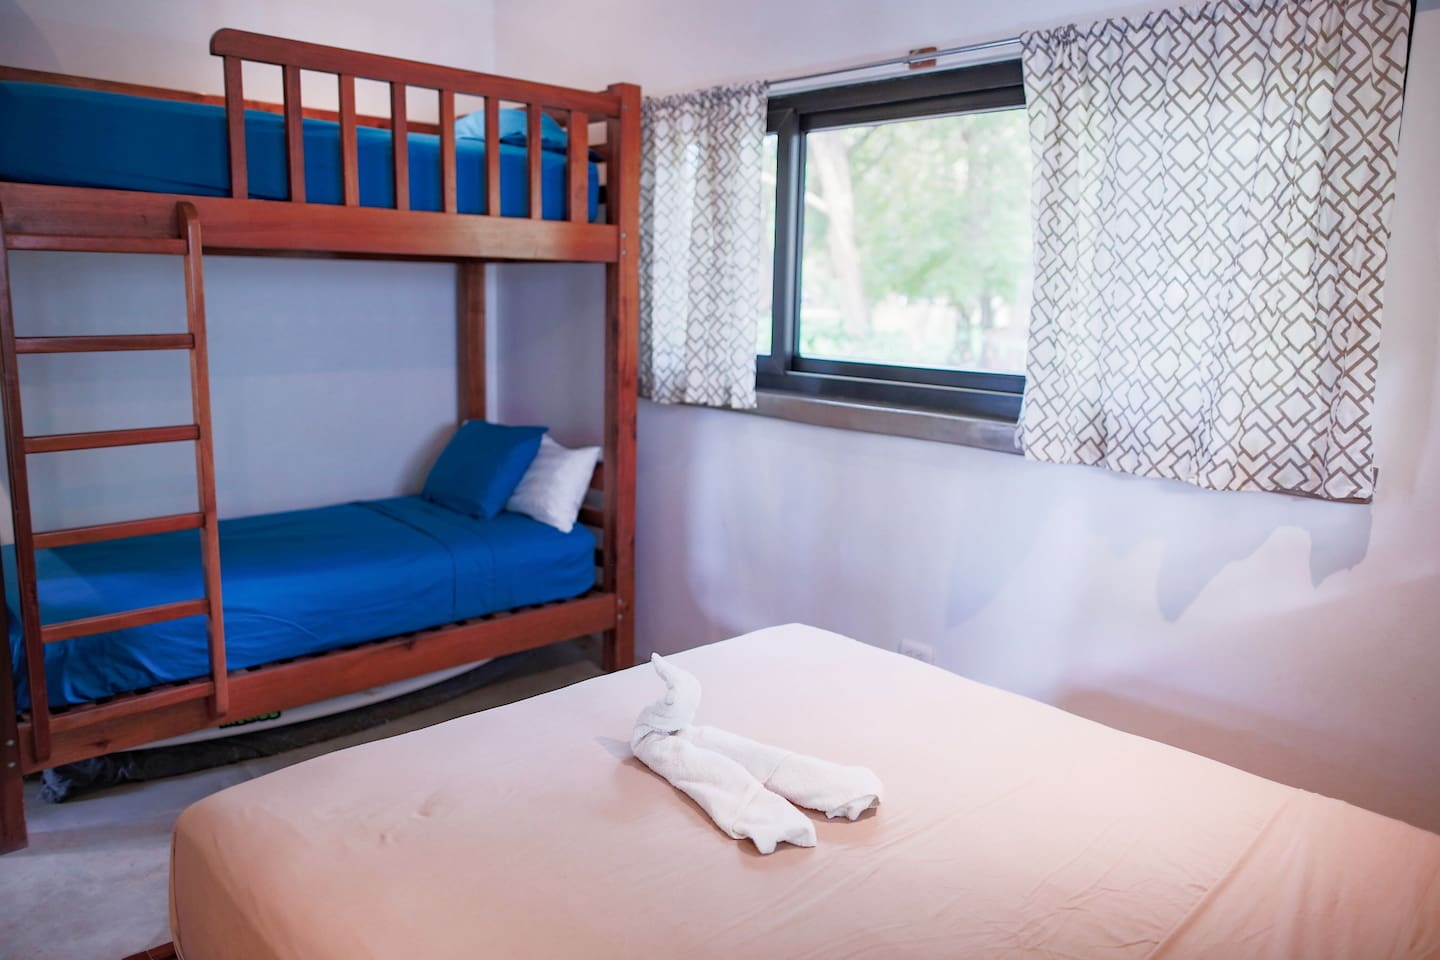 El Nino sleeps 4 comfortably, perfect for a small family, couple or a few surfers.